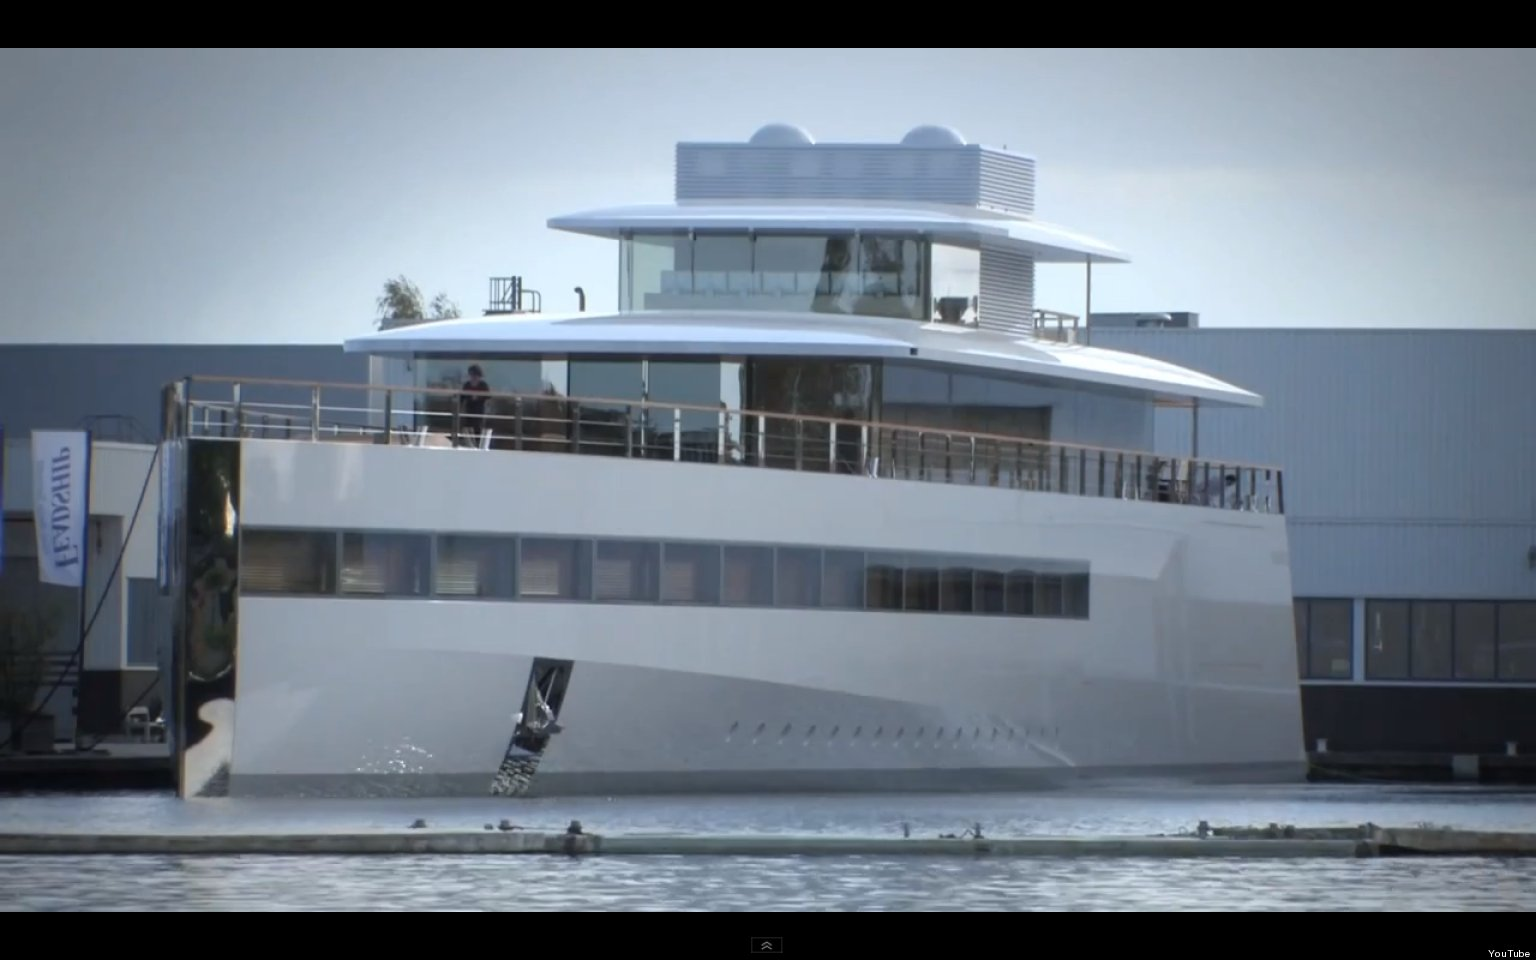 Steve Jobsu0027 Yacht, Venus, Finished A Year After His Death (PHOTOS, VIDEO) |  HuffPost